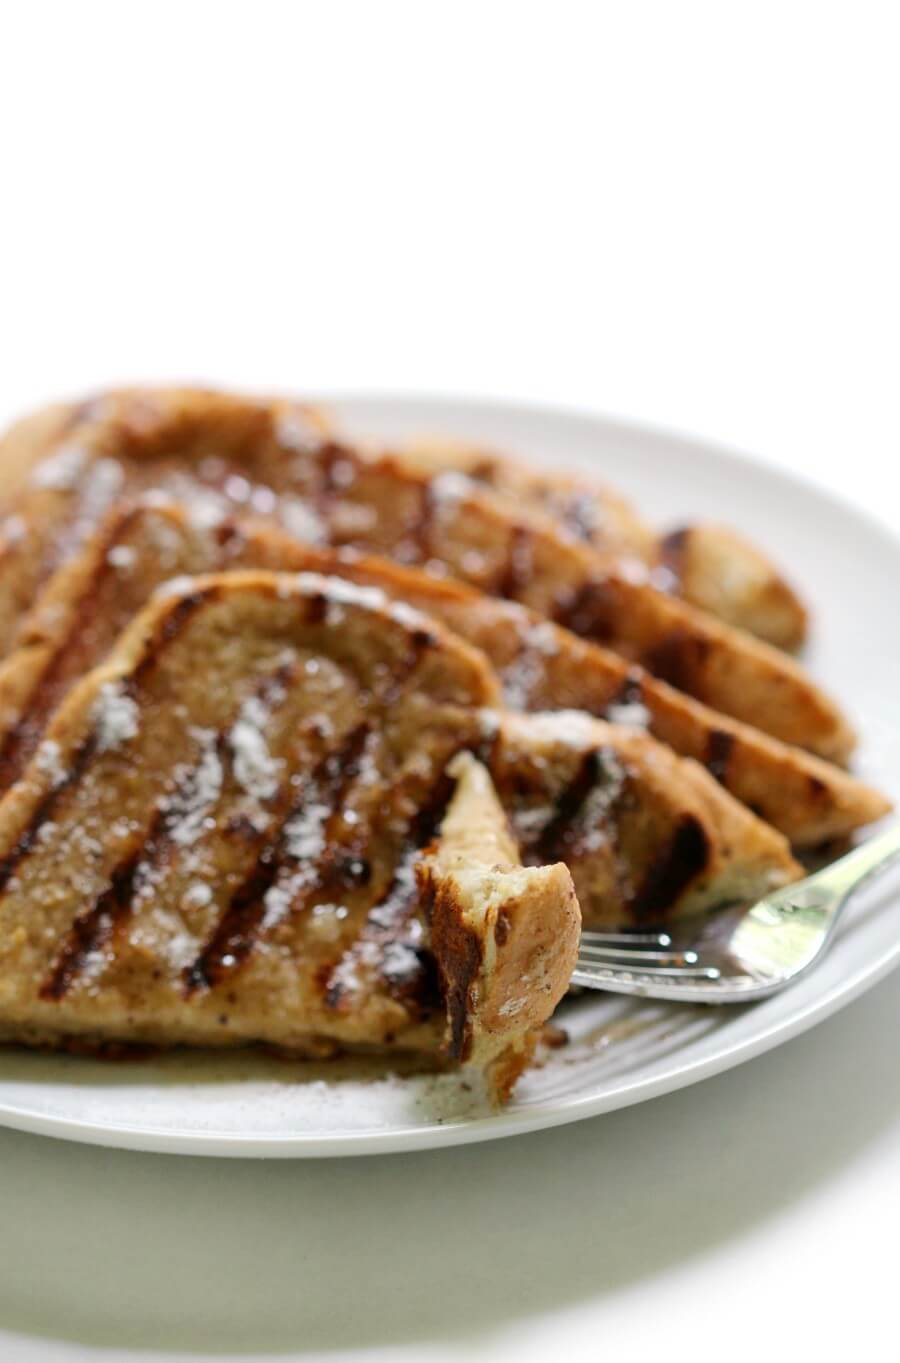 front view of gluten-free grilled french toast